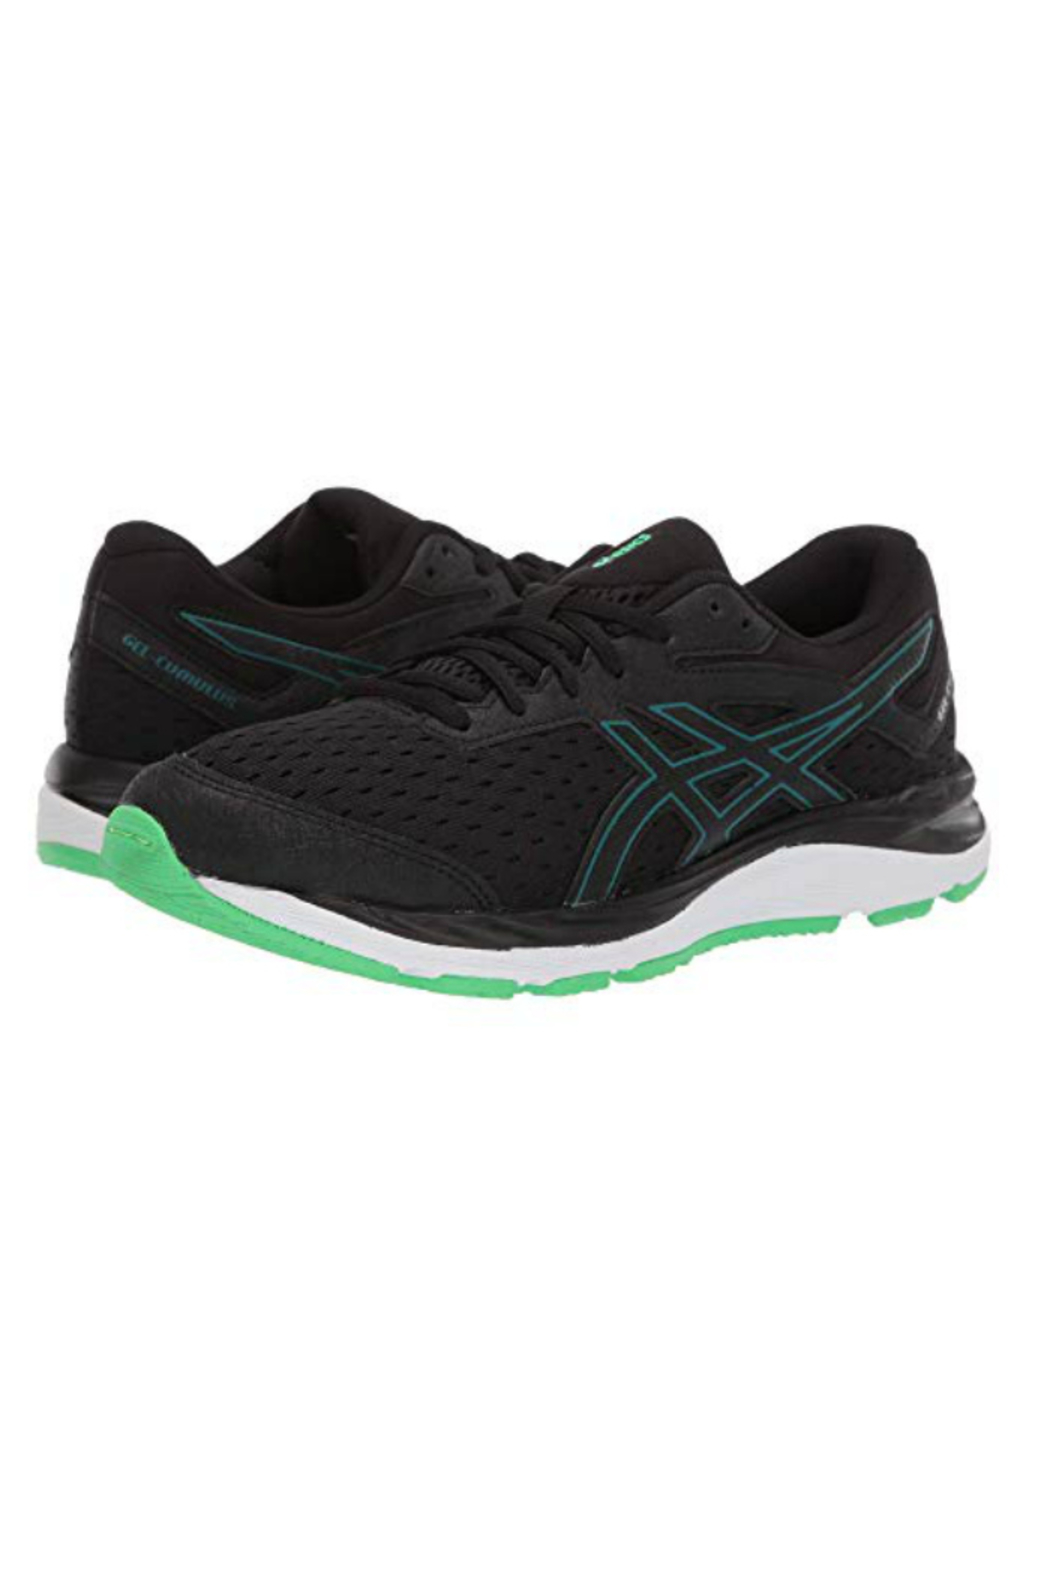 8f6ac14ce955d Asics ASICS GEL-CUMULUS 20 GS from New Jersey by Suburban Shoes ...